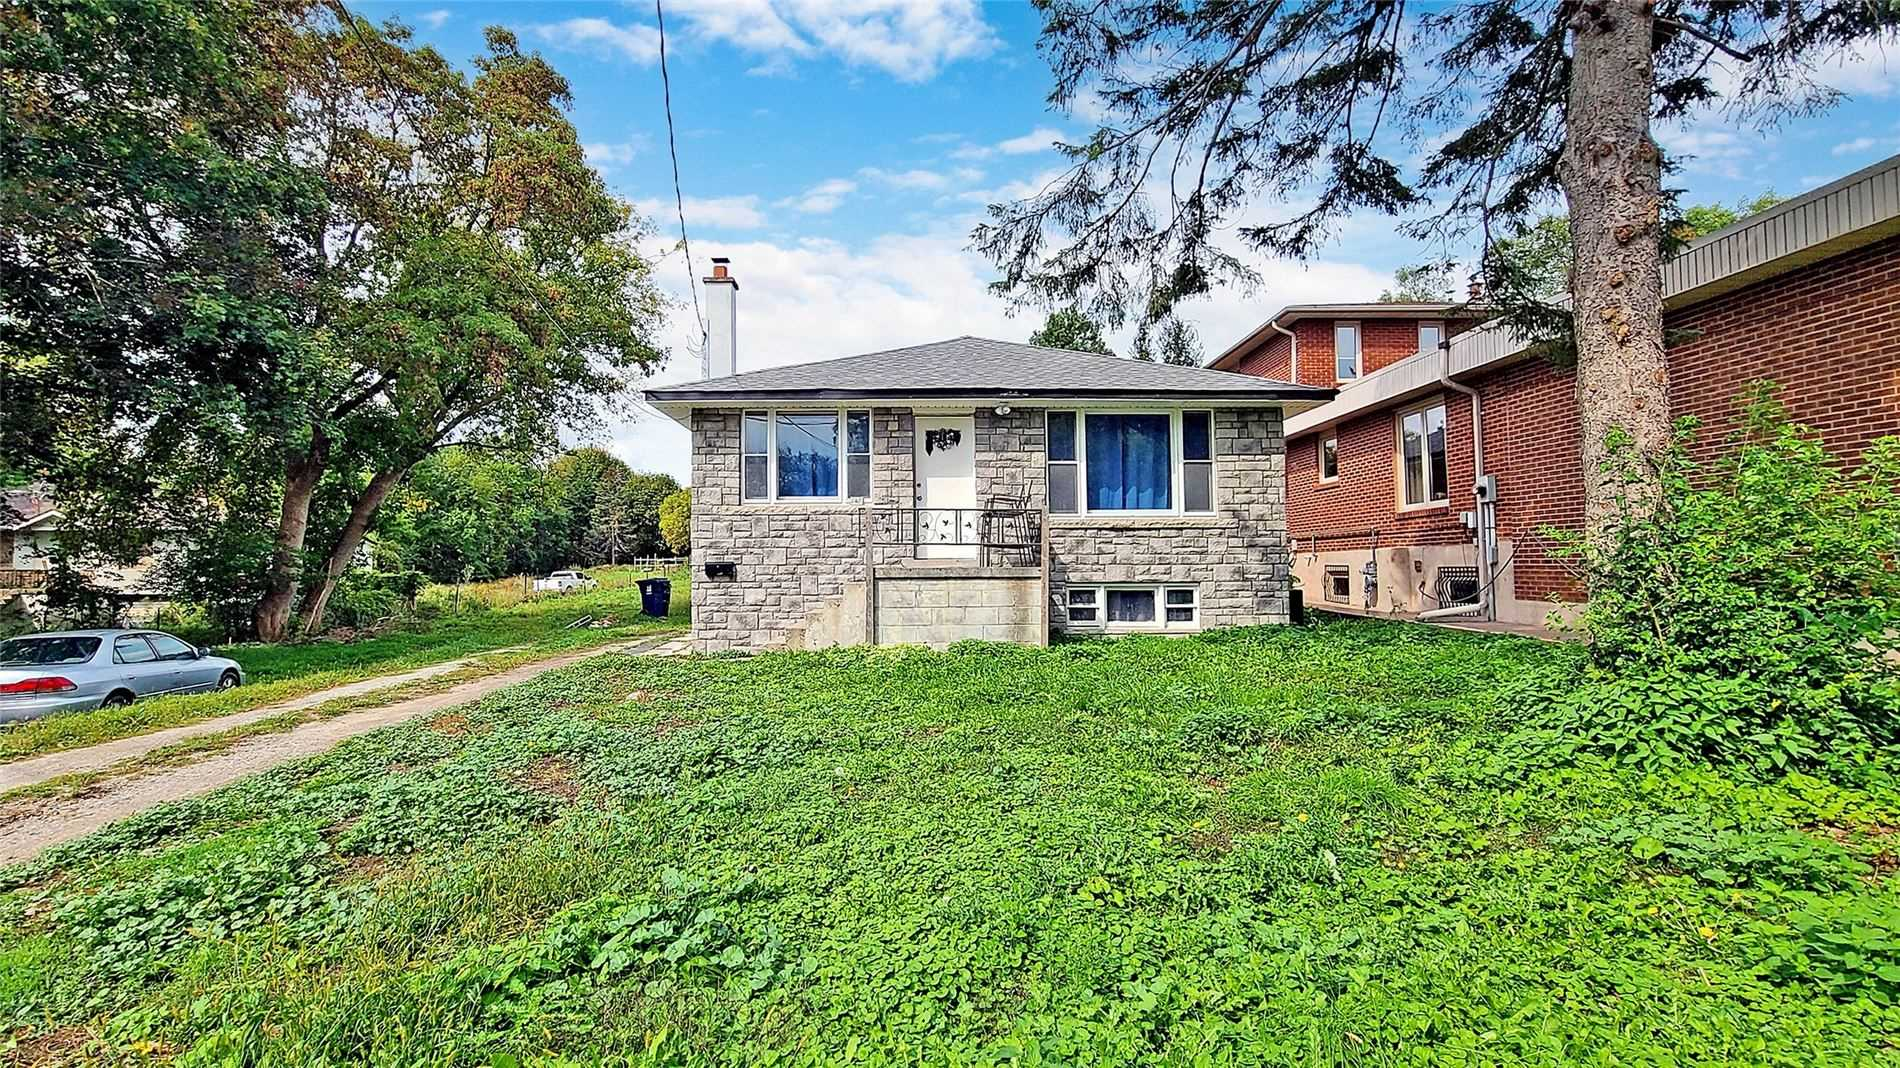 148 Rowntree Mill Rd, Toronto, Ontario M9L1C9, 3 Bedrooms Bedrooms, 5 Rooms Rooms,2 BathroomsBathrooms,Detached,For Sale,Rowntree Mill,W5382707